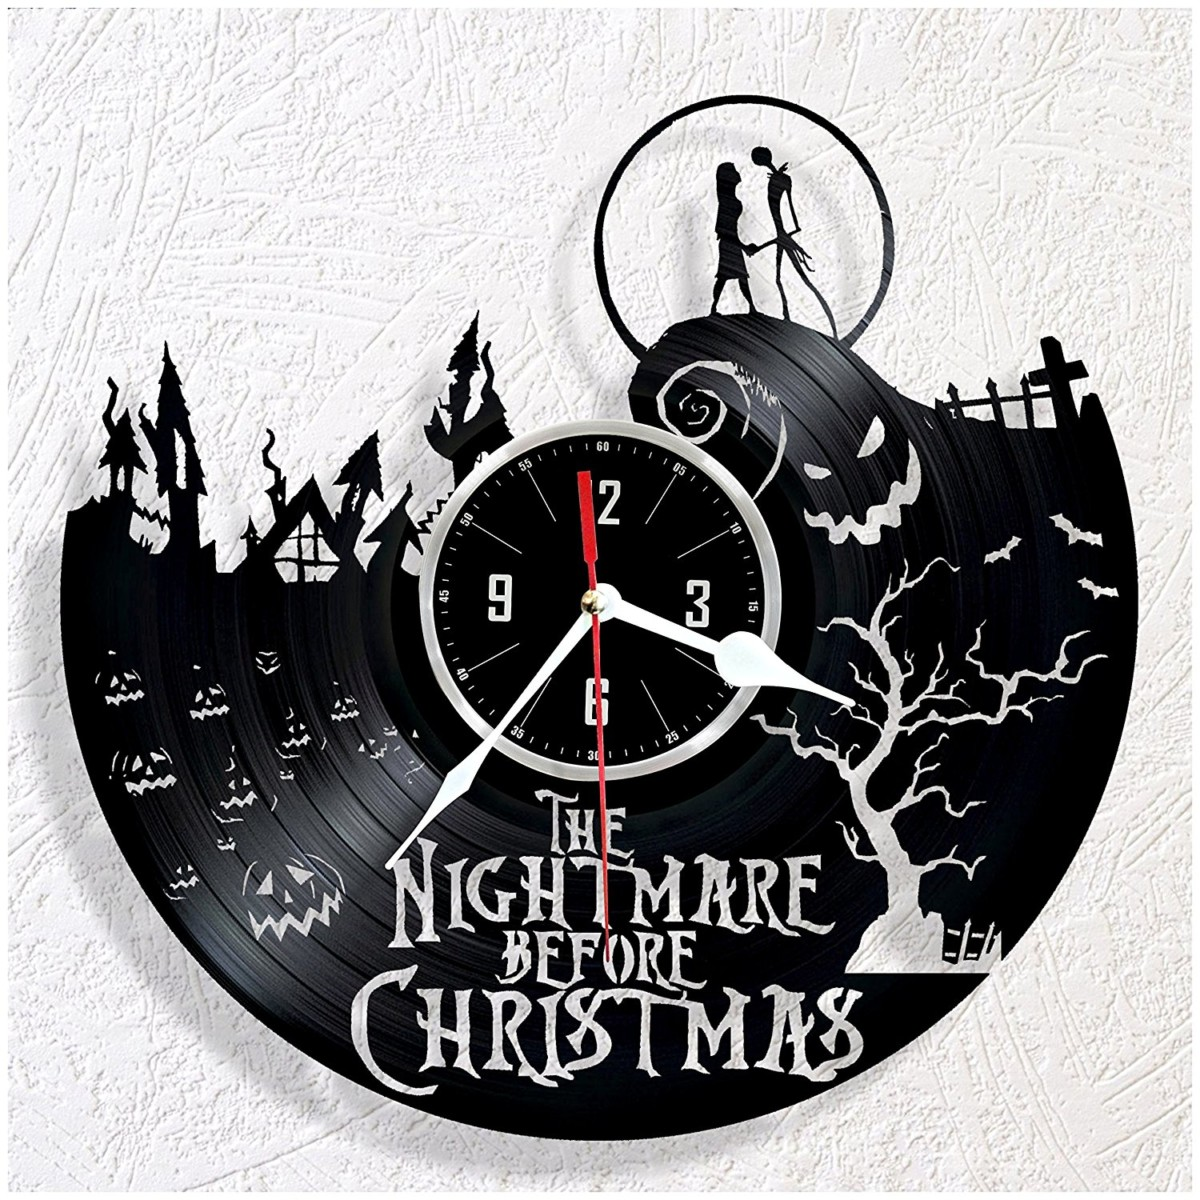 Are You A Fan Of Jack Skellington? Check Out Some Great Merchandise ...